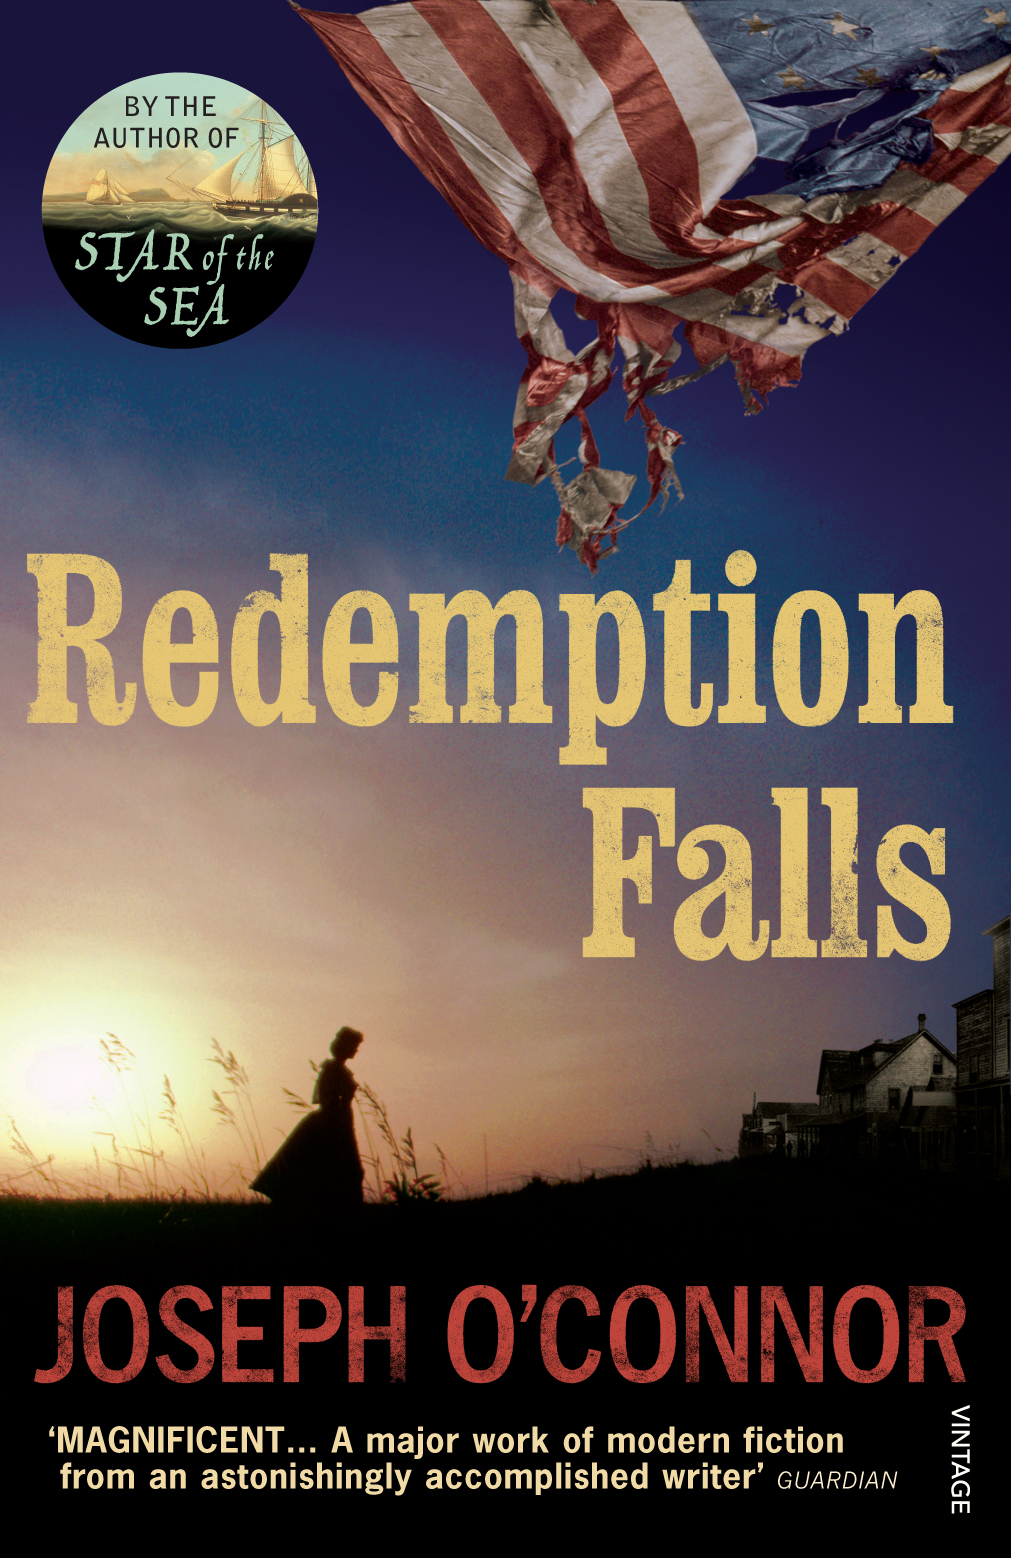 REDEMPTION FALLS  Literary fiction, 464 pages, Vintage, May 2008  1865. The American Civil War is ending. Eighteen years after the famine ship Star of the Seadocked at New York, the daughter of two of her passengers sets out from Baton Rouge, Louisiana, on a walk across a devastated America. Eliza Duane Mooney is searching for her younger brother she has not seen in four years, one of the hundred thousand children drawn into the war. His fate has been mysterious and will prove extraordinary.  It's a walk that will have consequences for many seemingly unconnected survivors: a love-struck cartographer, a haunted Latina poetess, rebel guerrilla Cole McLaurenson, runaway slave Elizabeth Longstreet and the mercurial revolutionary James Con O'Keeffe, who commanded a brigade of Irish immigrants in the Union Army and is now Governor of a western wilderness where nothing is as it seems.